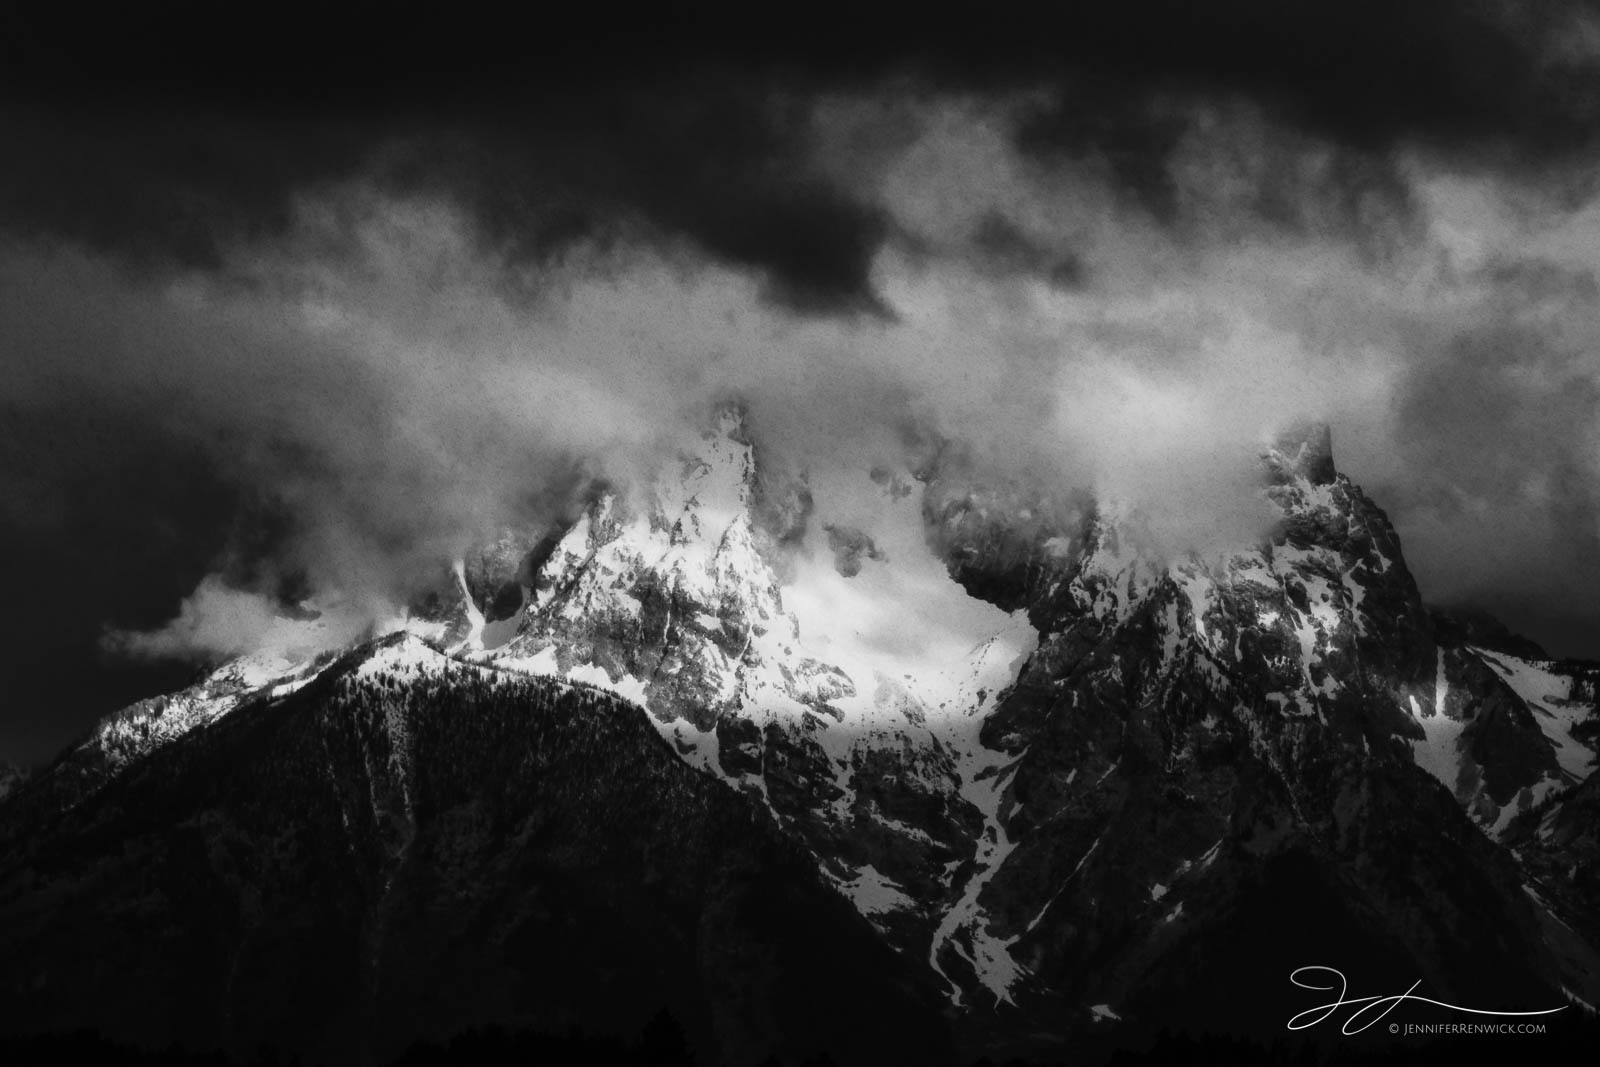 Grand Teton National Park, Wyoming, mountains, snow, landscape, trees, Jackson Hole, clouds, black and white, monochrome, rain, storm, Mt. Moran, photo